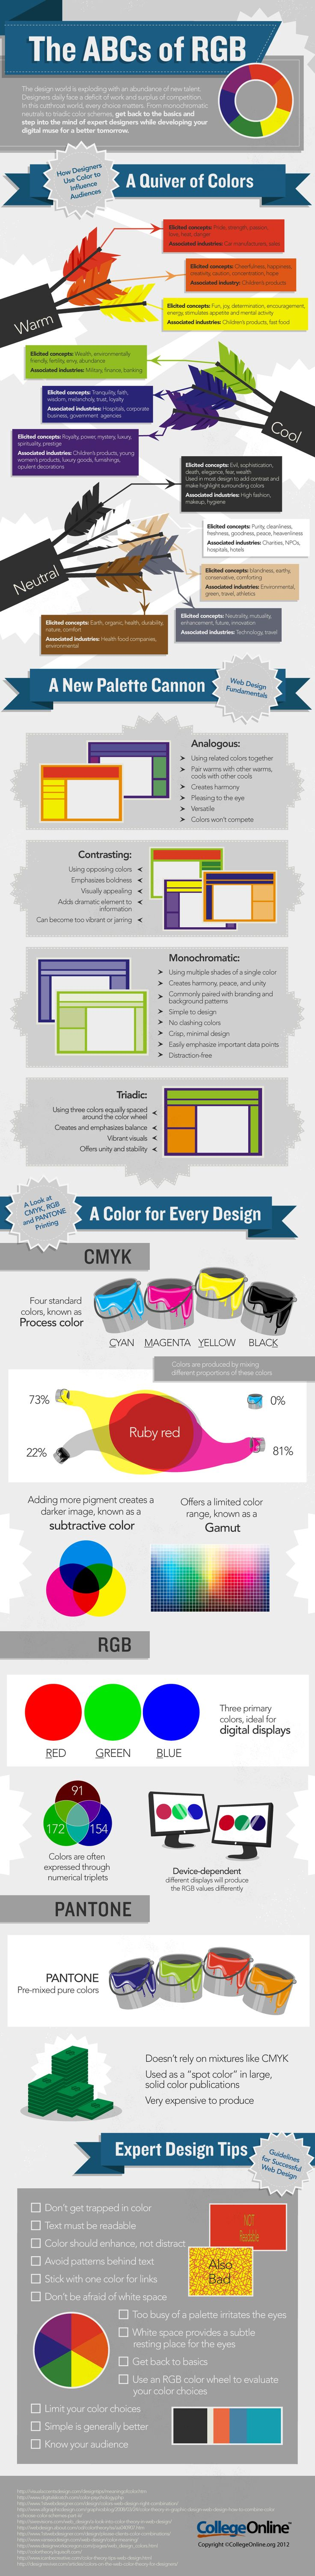 Online color wheel games - Color Theory And The Meaning Behind Color Design Essentials